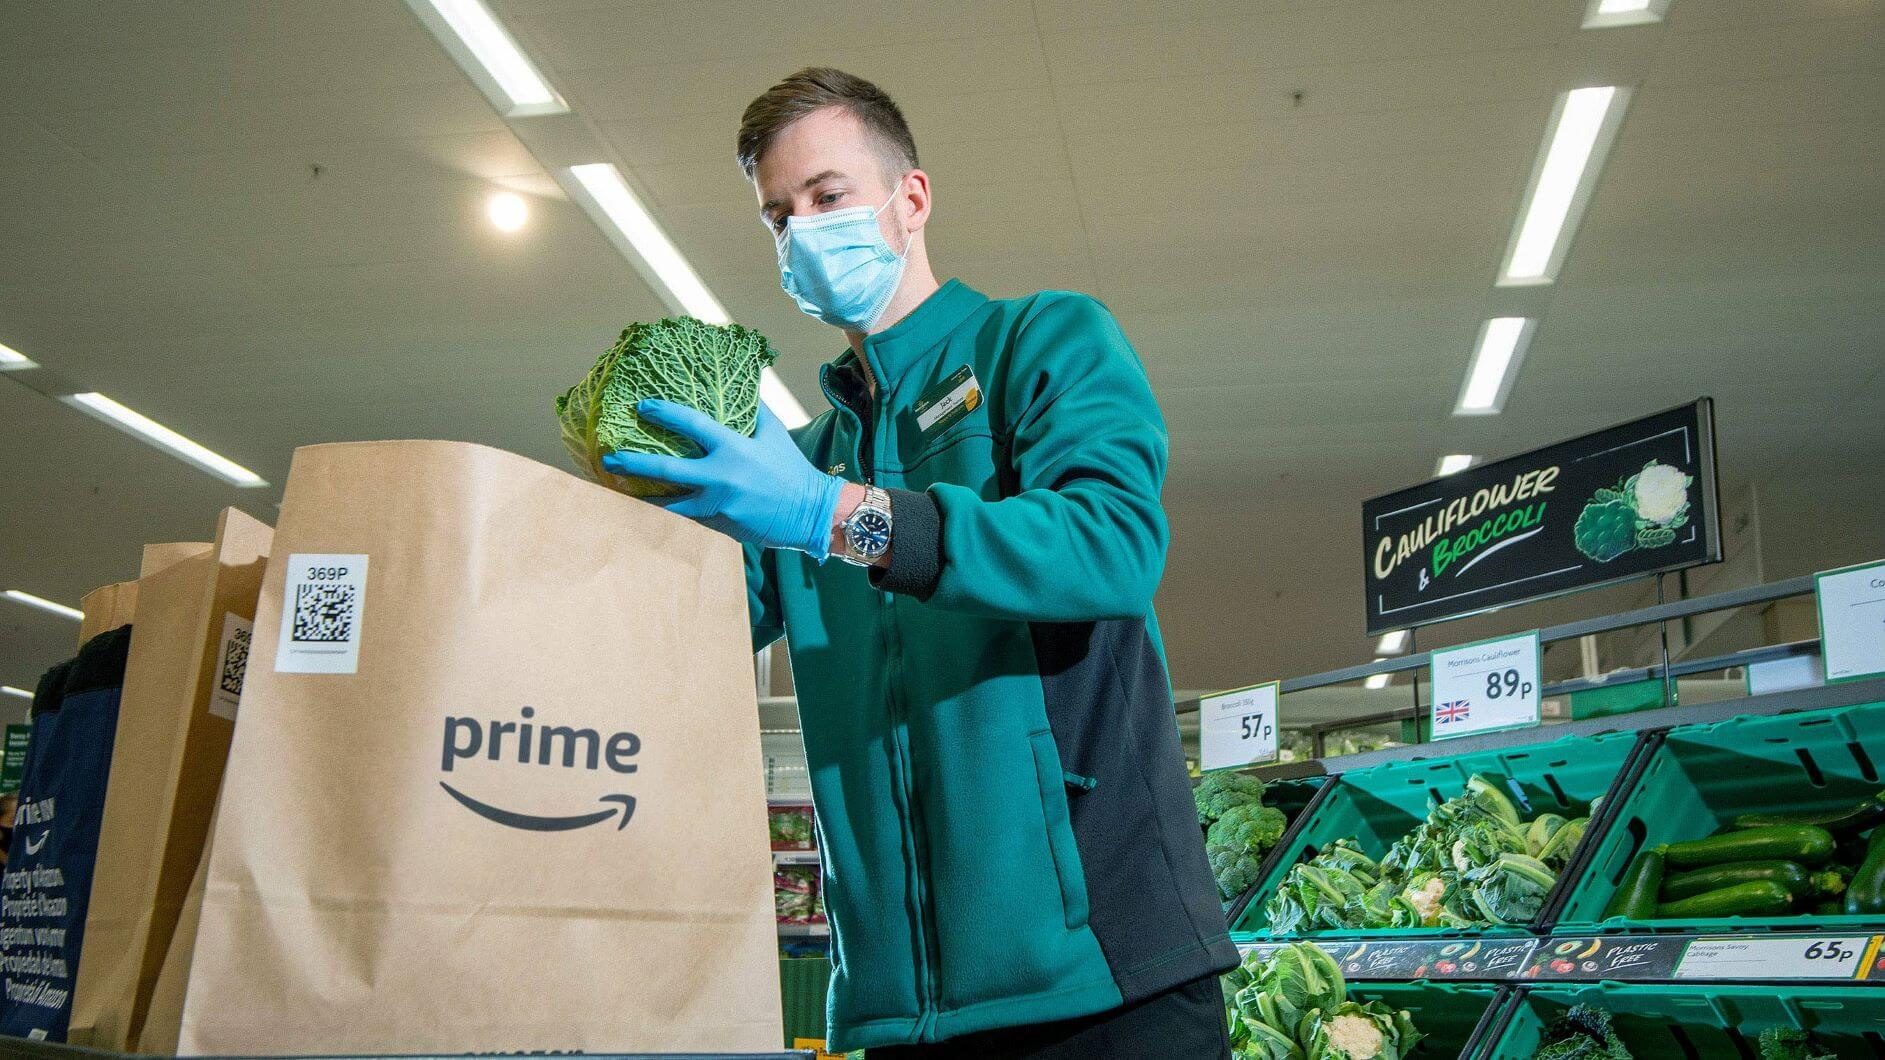 Morrisons Creates 1,000 New Jobs To Expand Amazon Prime Service